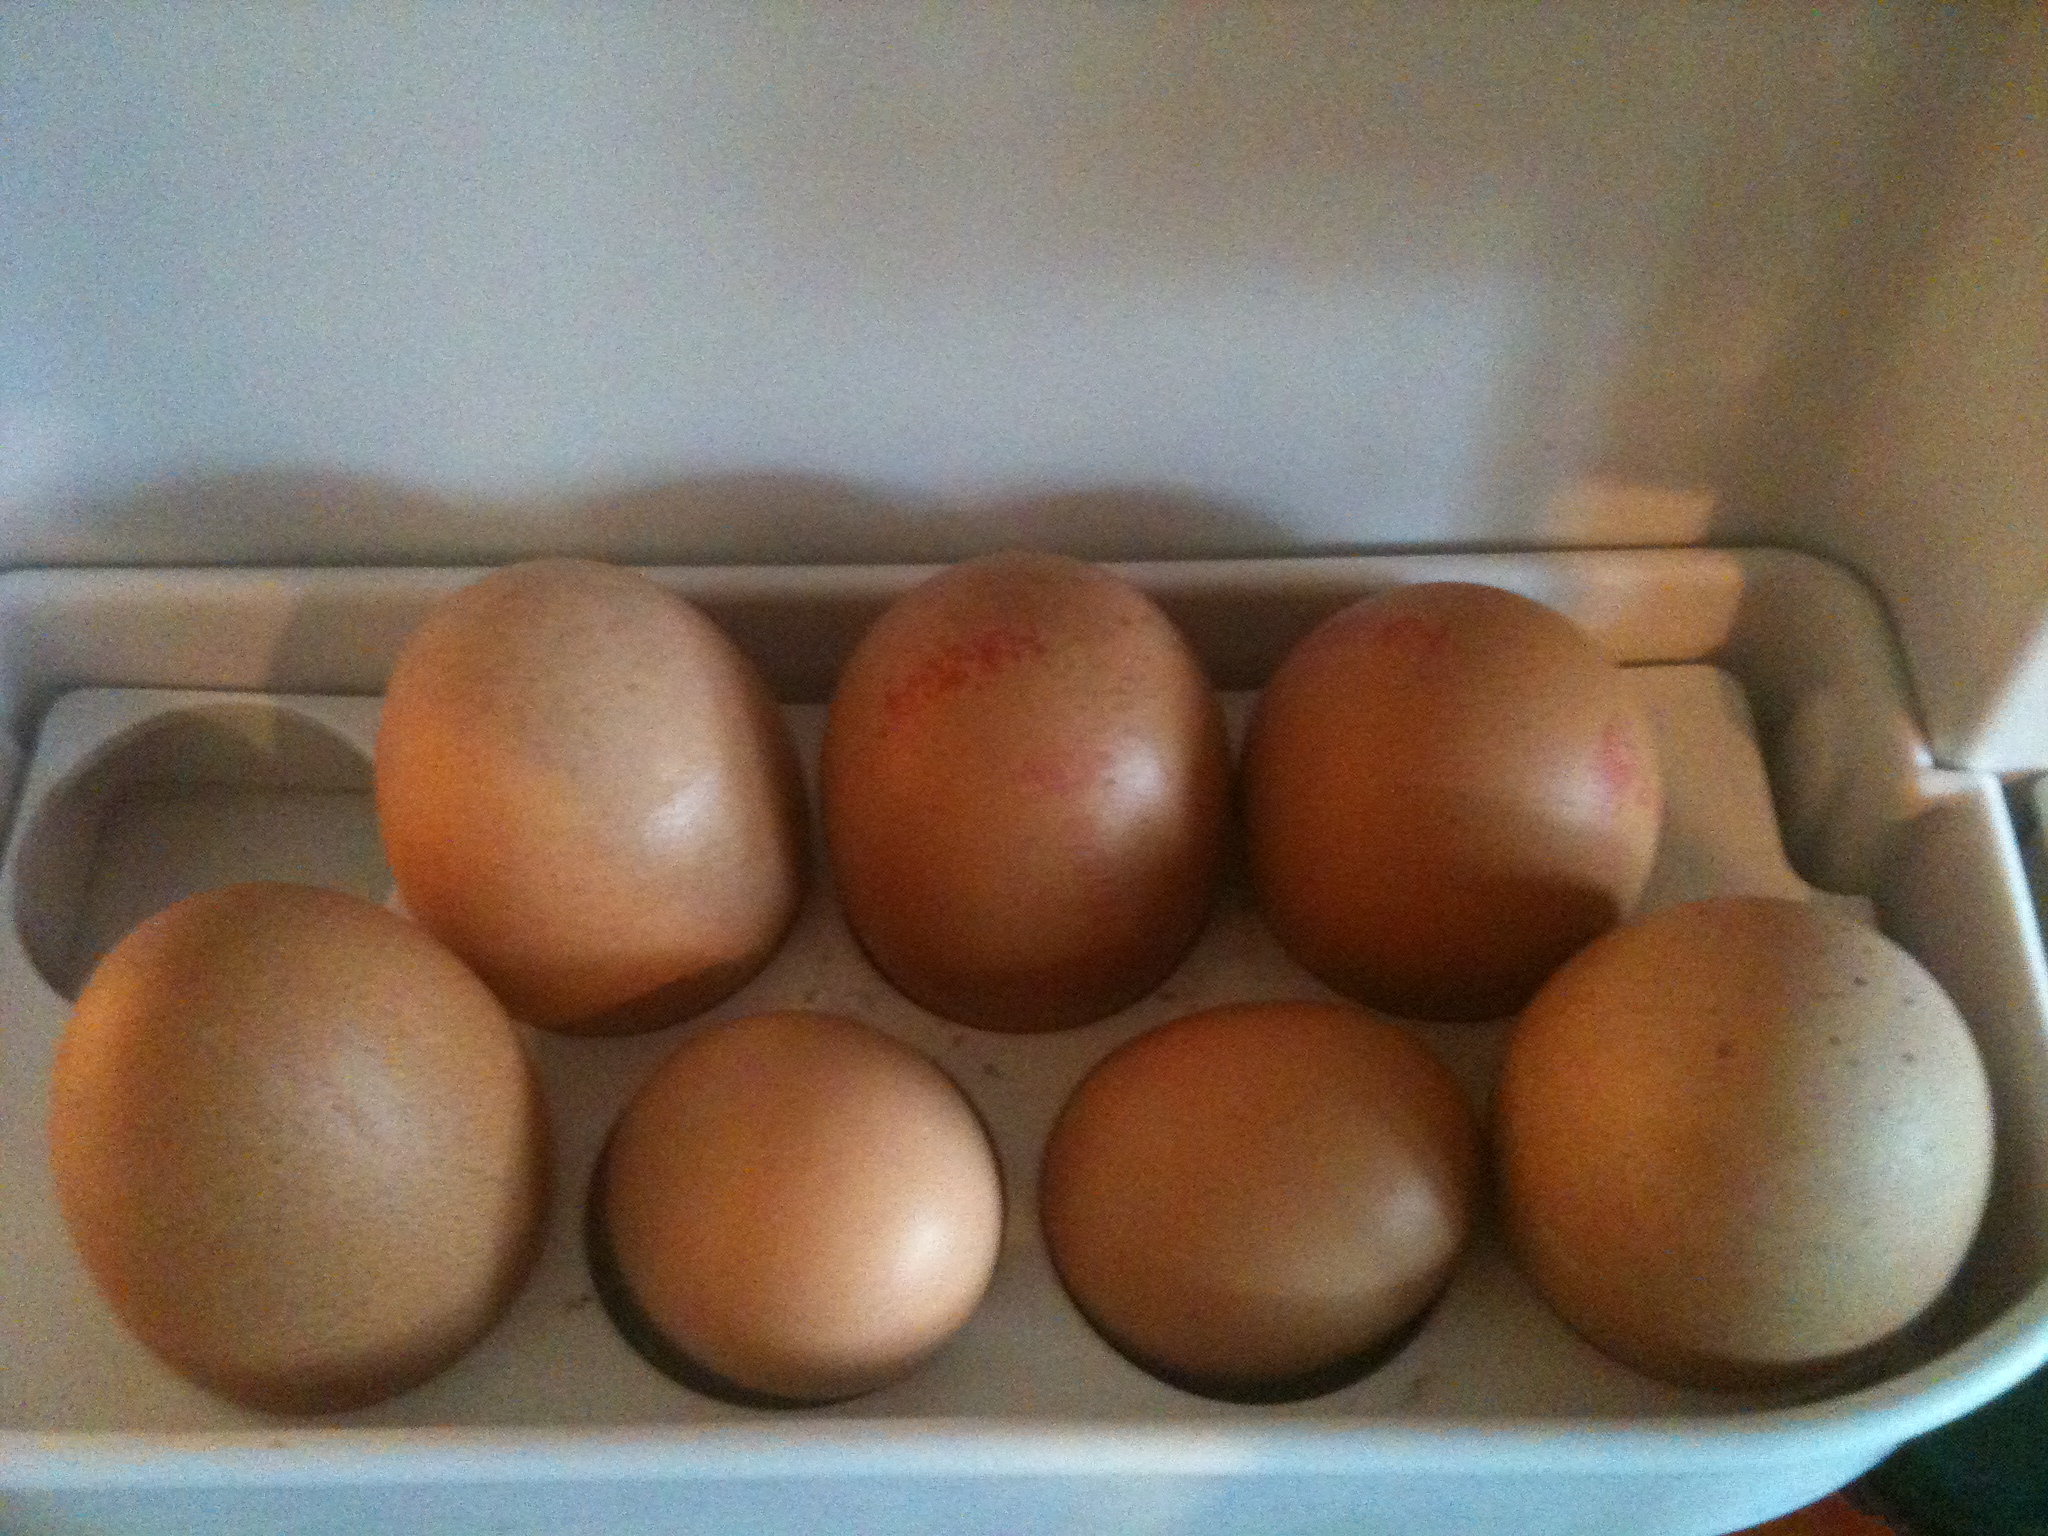 Pearl's eggs surrounded by shop-bought ones in the fridge